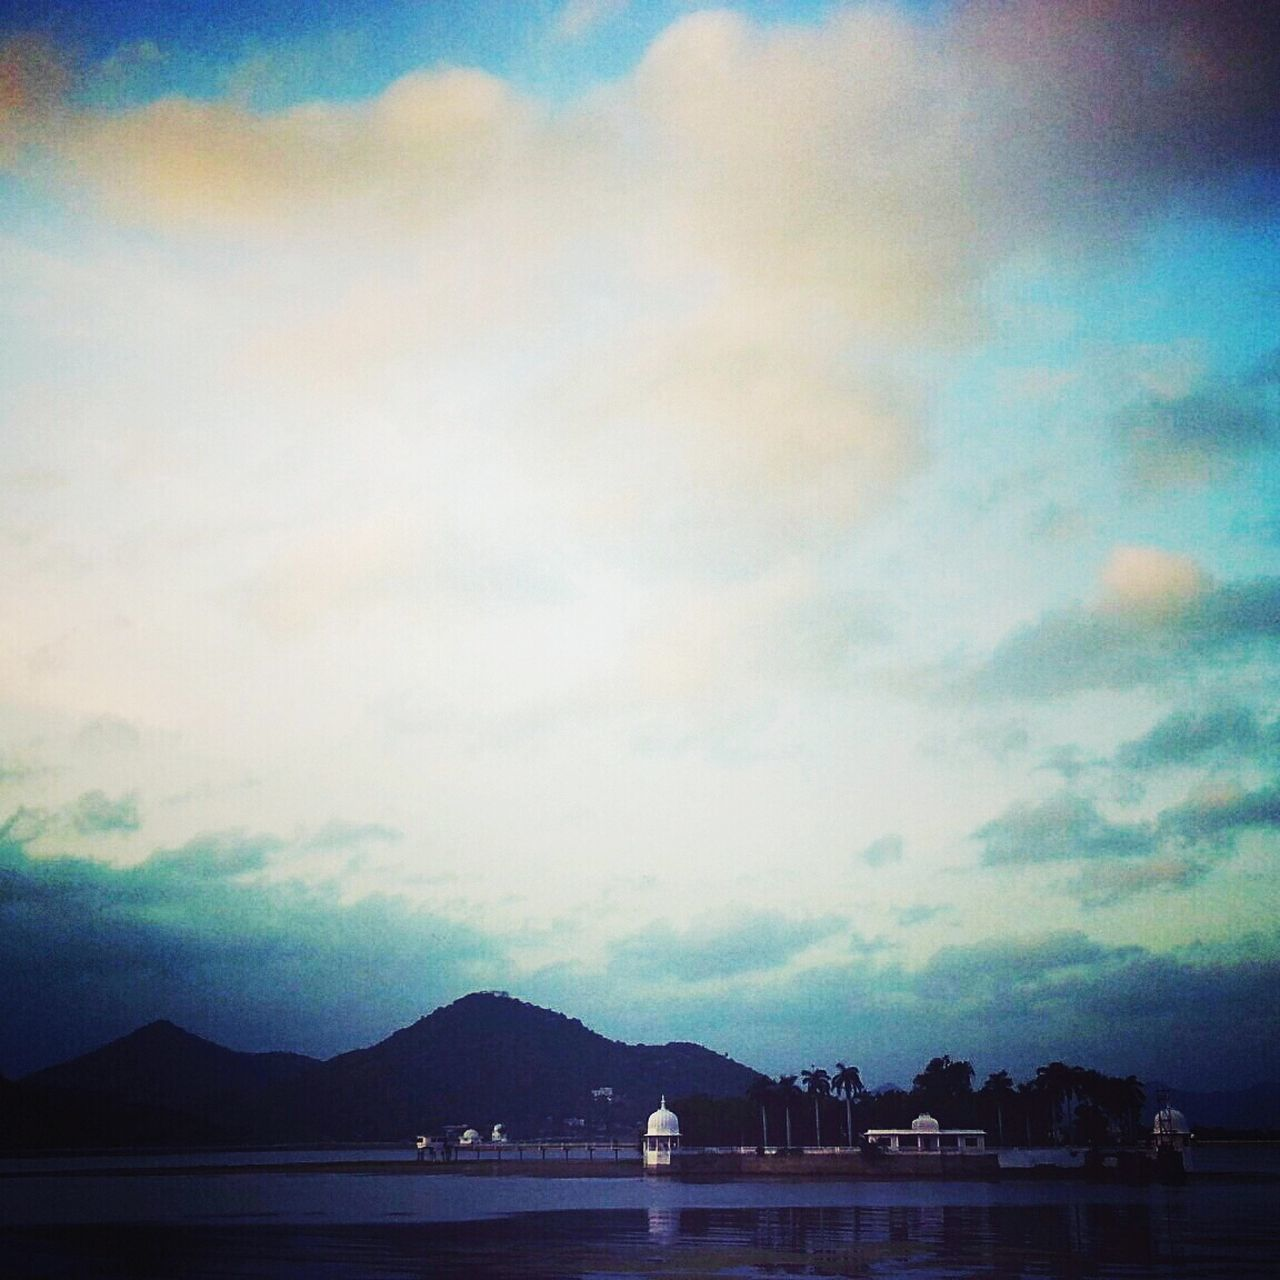 The sky broke like an egg into the sunset and the water caught fire! Hello World Fatehsagar Udaipur_dairies Incredible India A Place You Must Visit Tourist Attraction  Great Atmosphere EyeEm Naturelovers